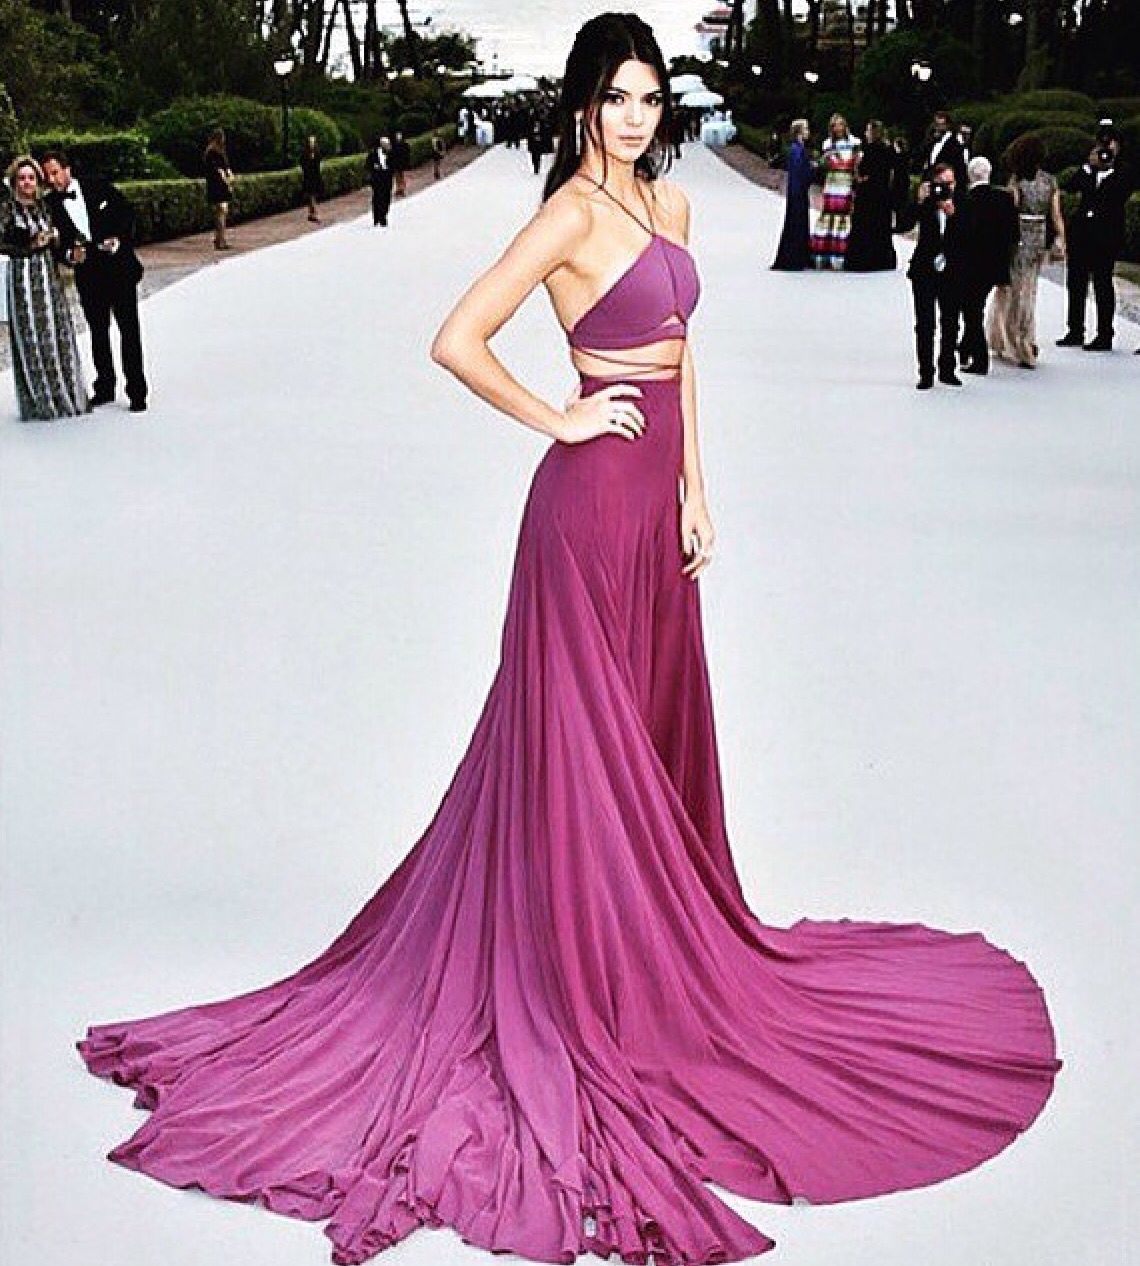 This dress is everything | kendall & kylie jenner | Pinterest